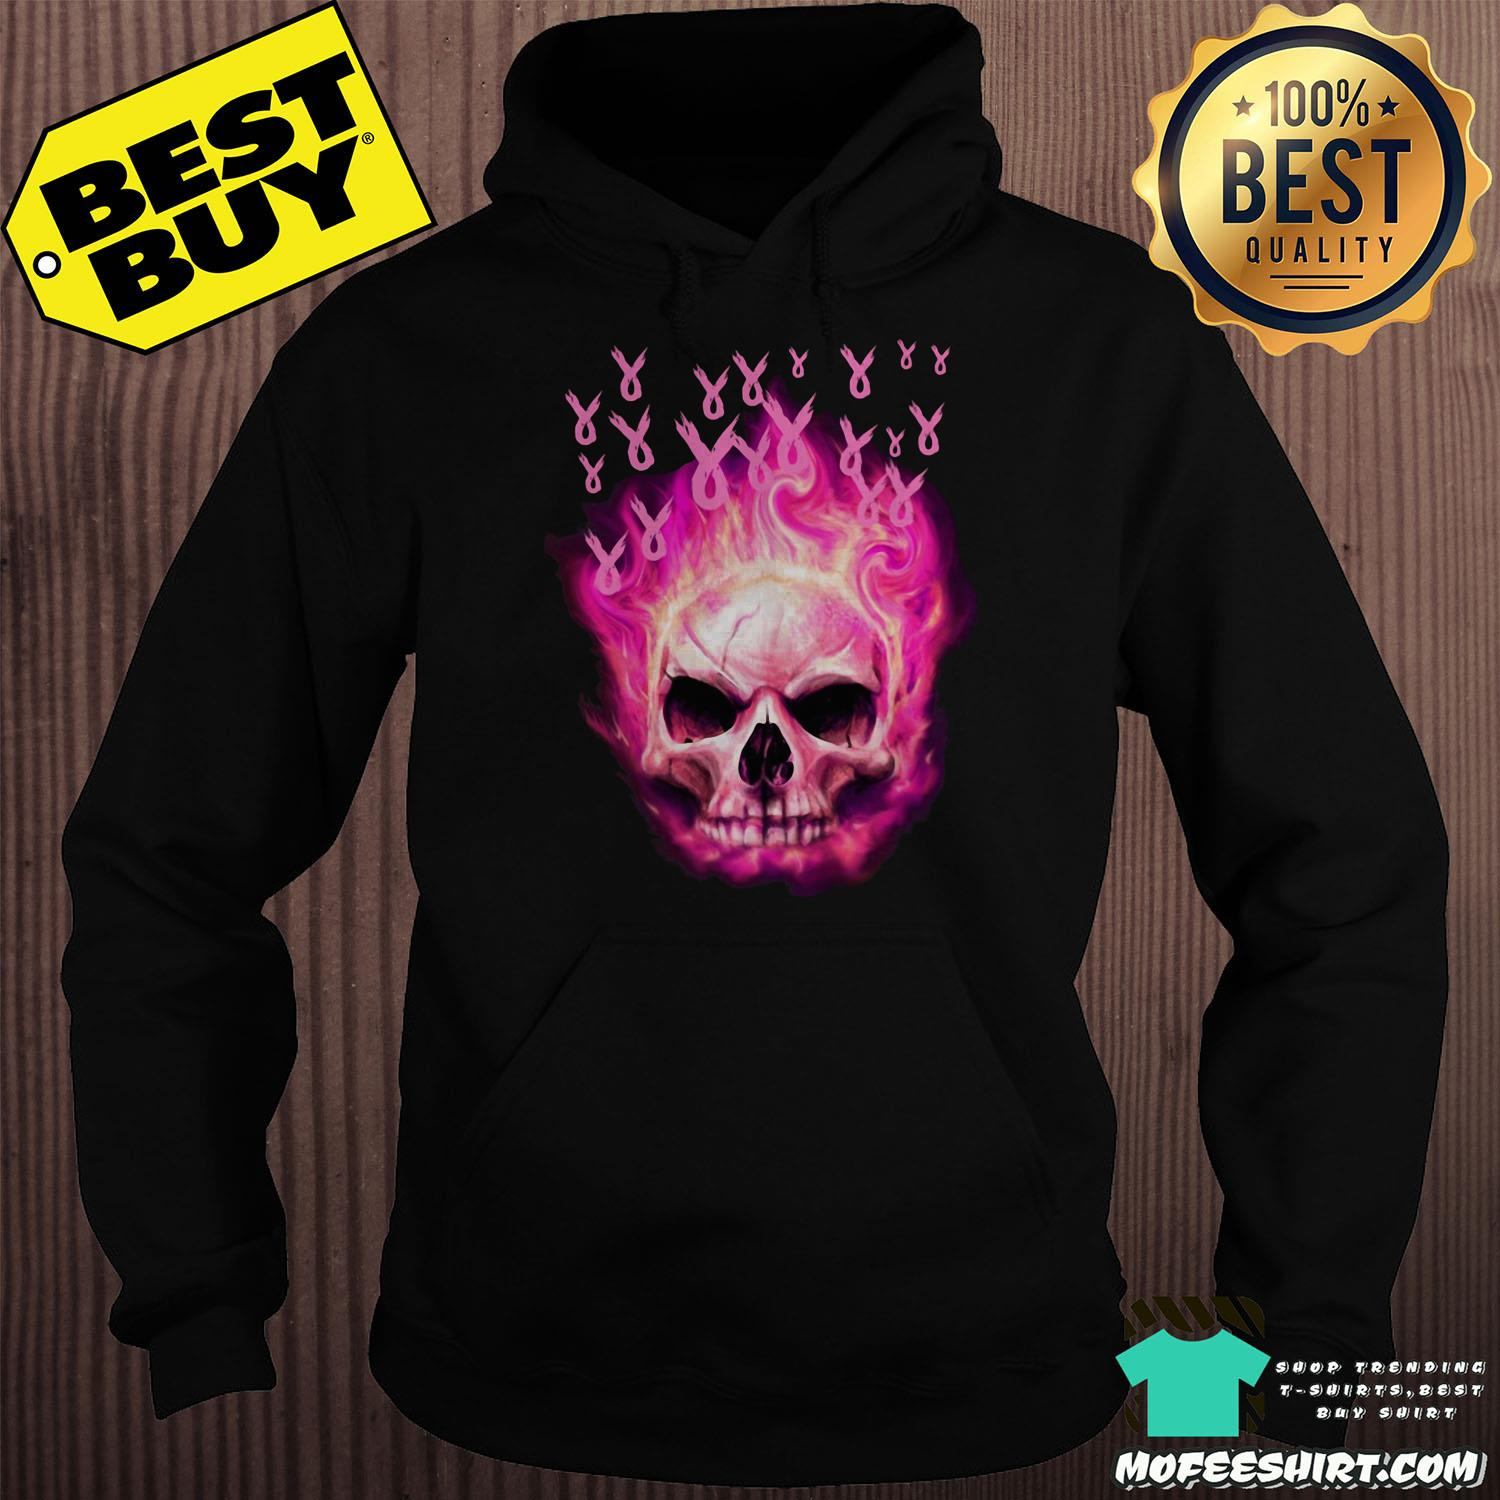 halloween the breast cancer awareness hoodie - Halloween The Breast Cancer Awareness shirt